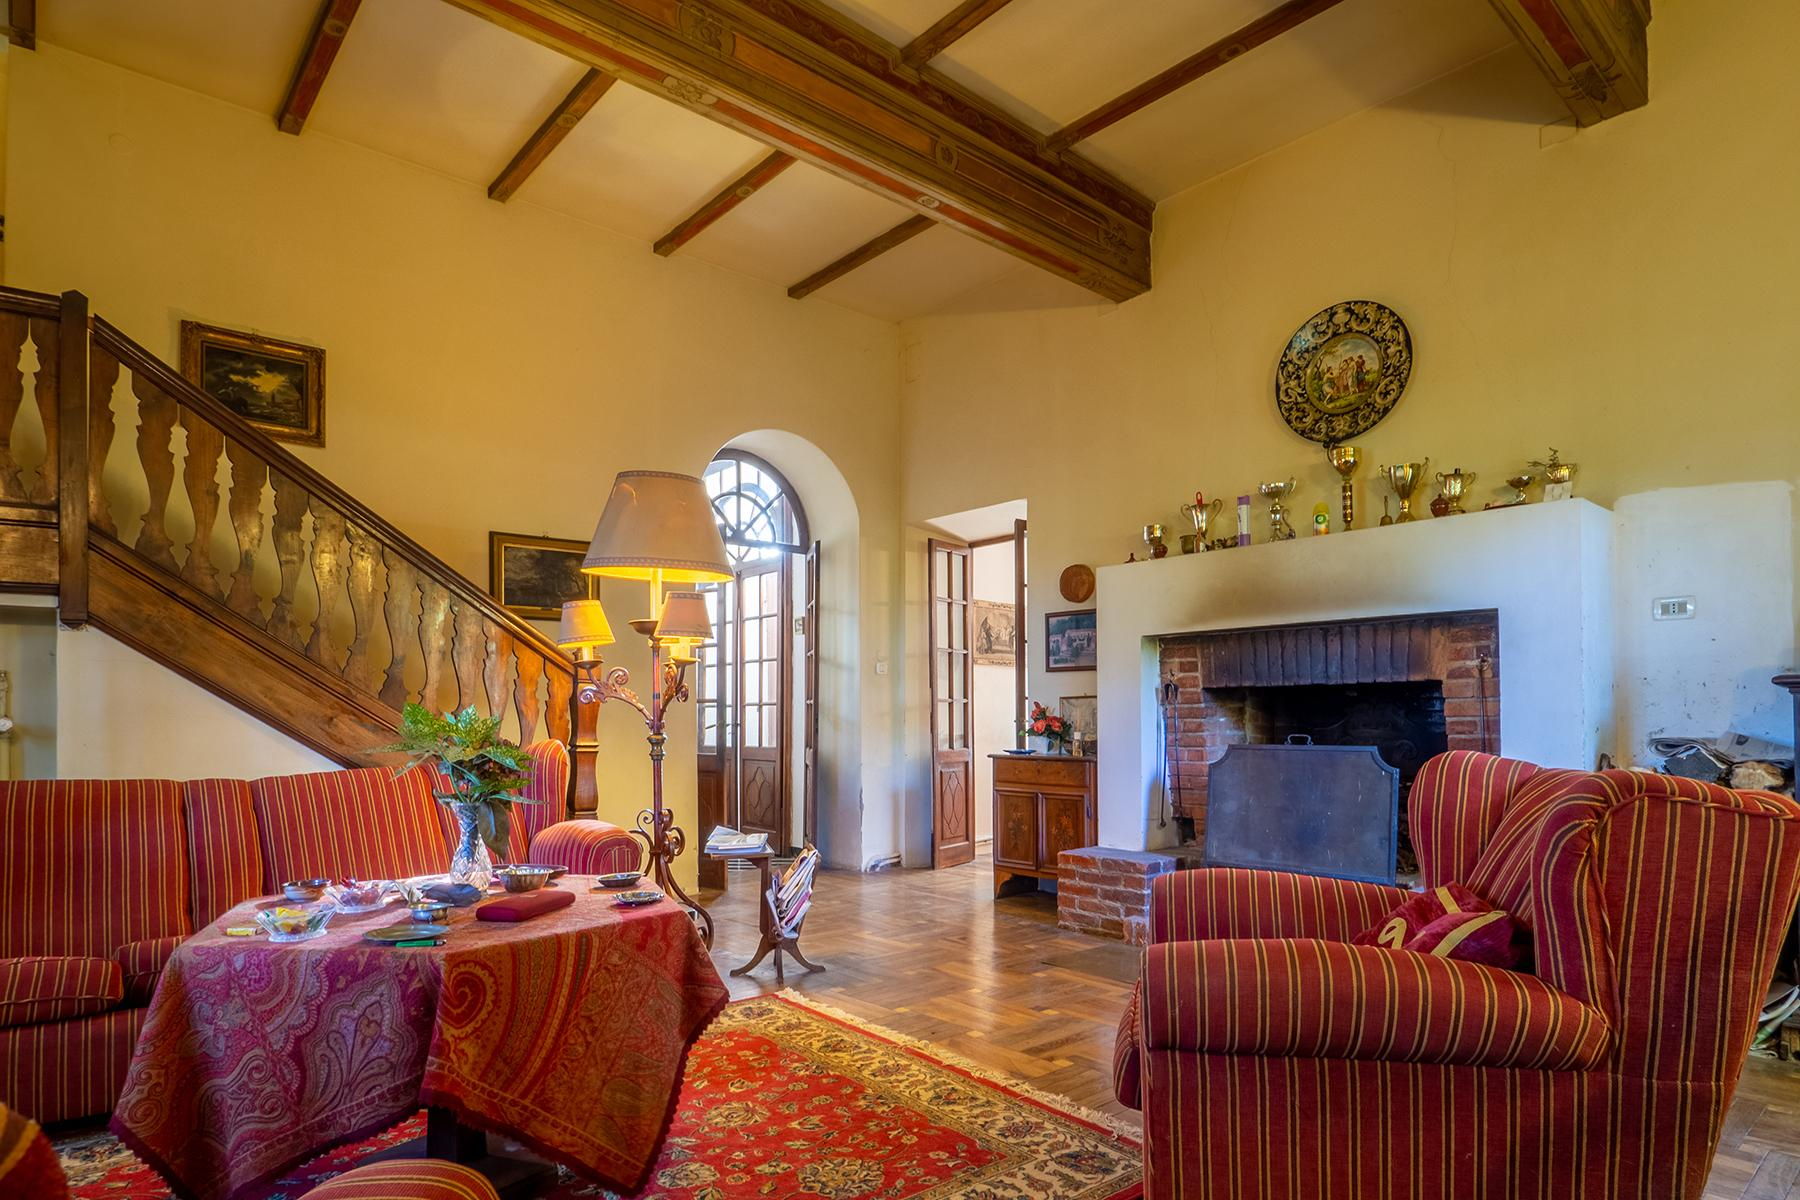 Prestigious historical manor nestled in the Monferrato countryside - 15